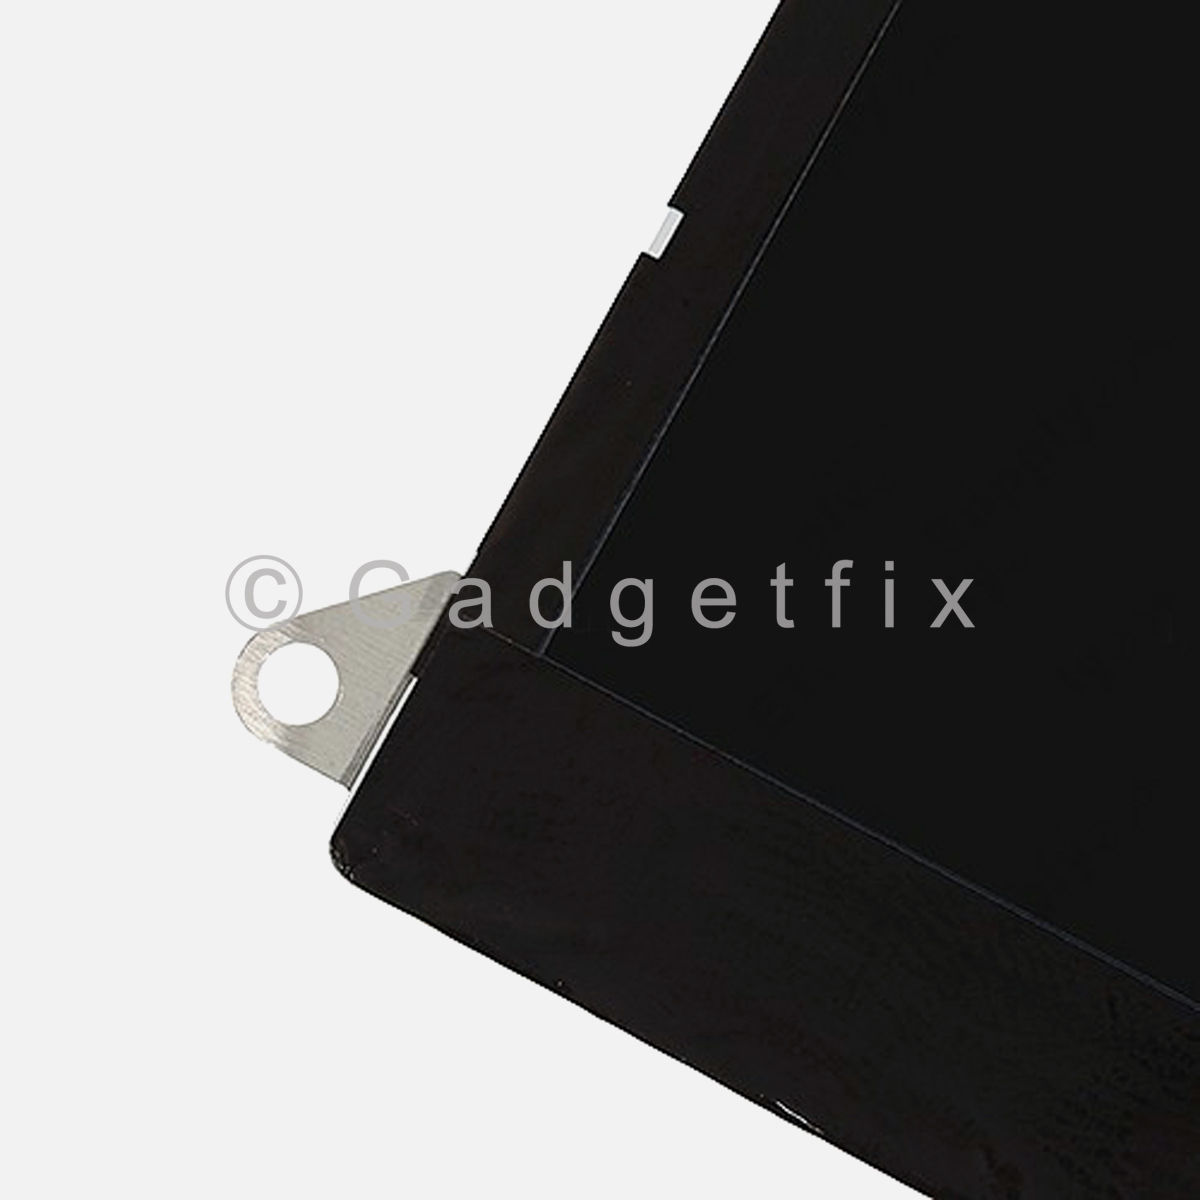 New Ipad 4 4th Gen Generation Compatible LCD Screen Display Parts Replacement US